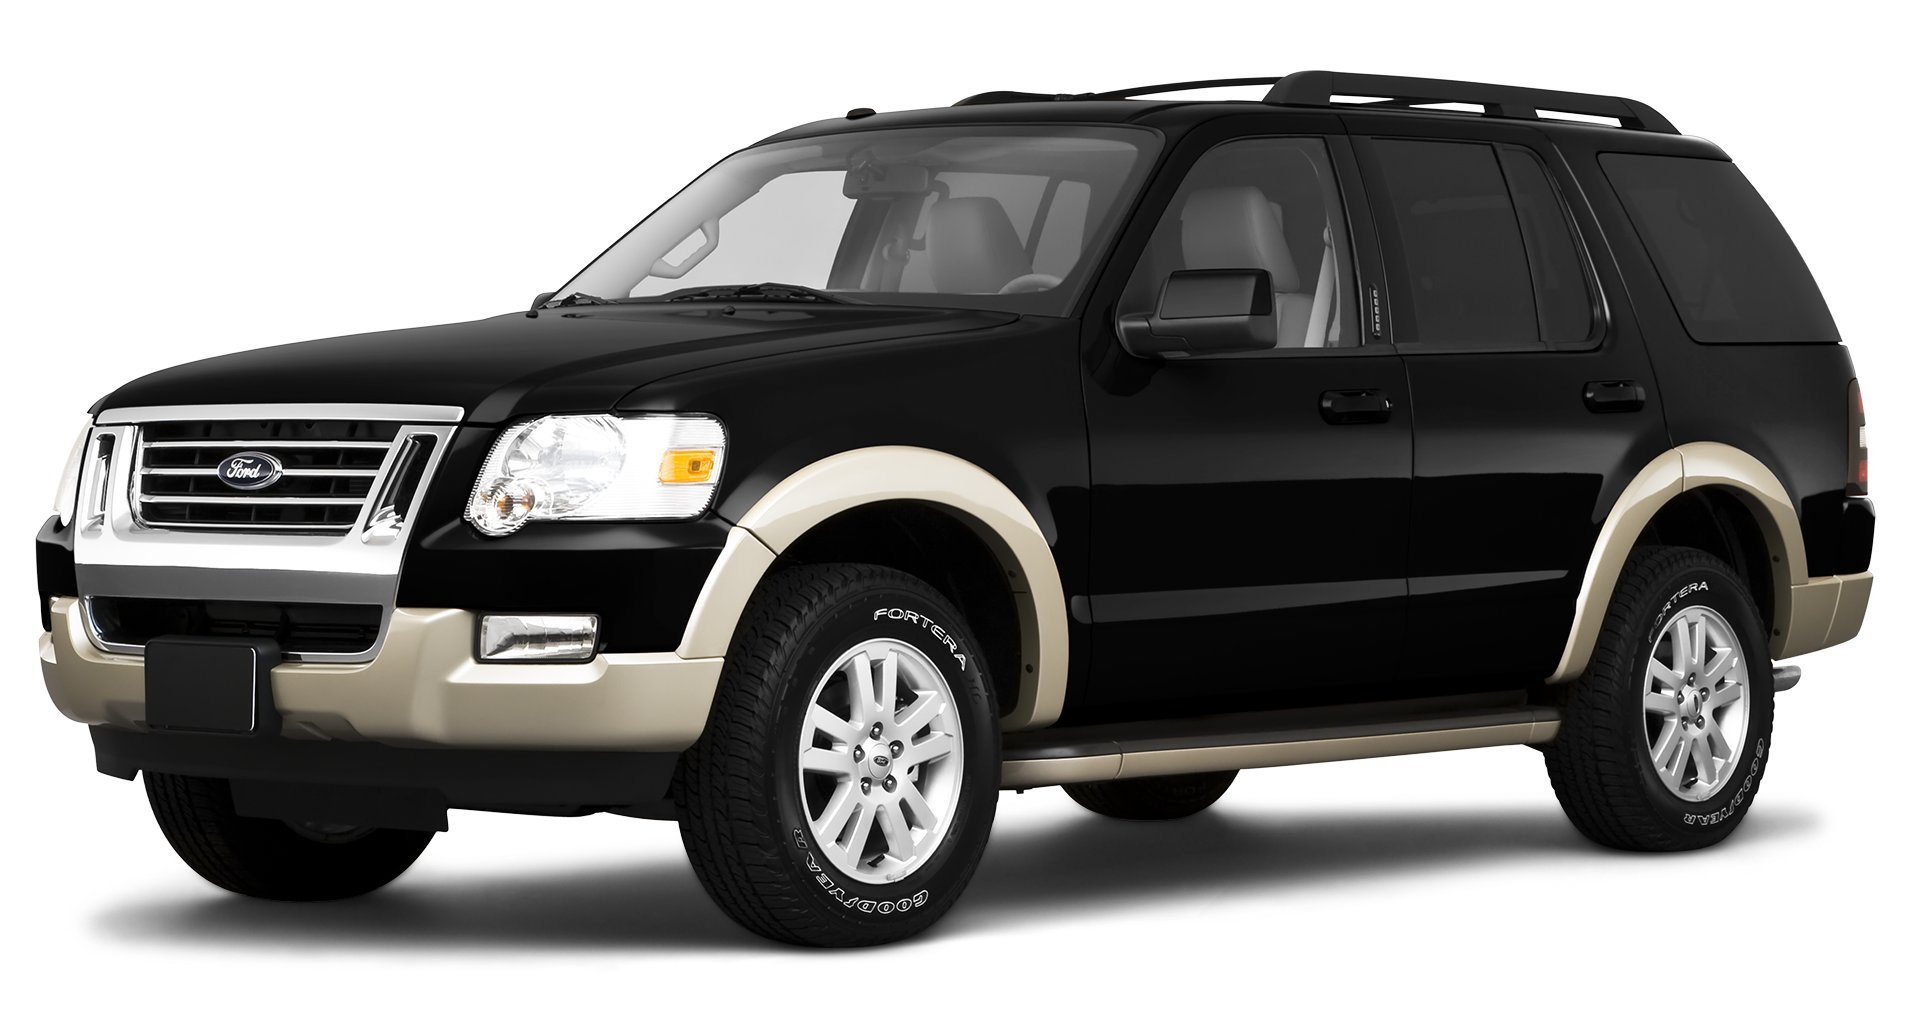 2010 ford explorer reviews images and specs. Black Bedroom Furniture Sets. Home Design Ideas